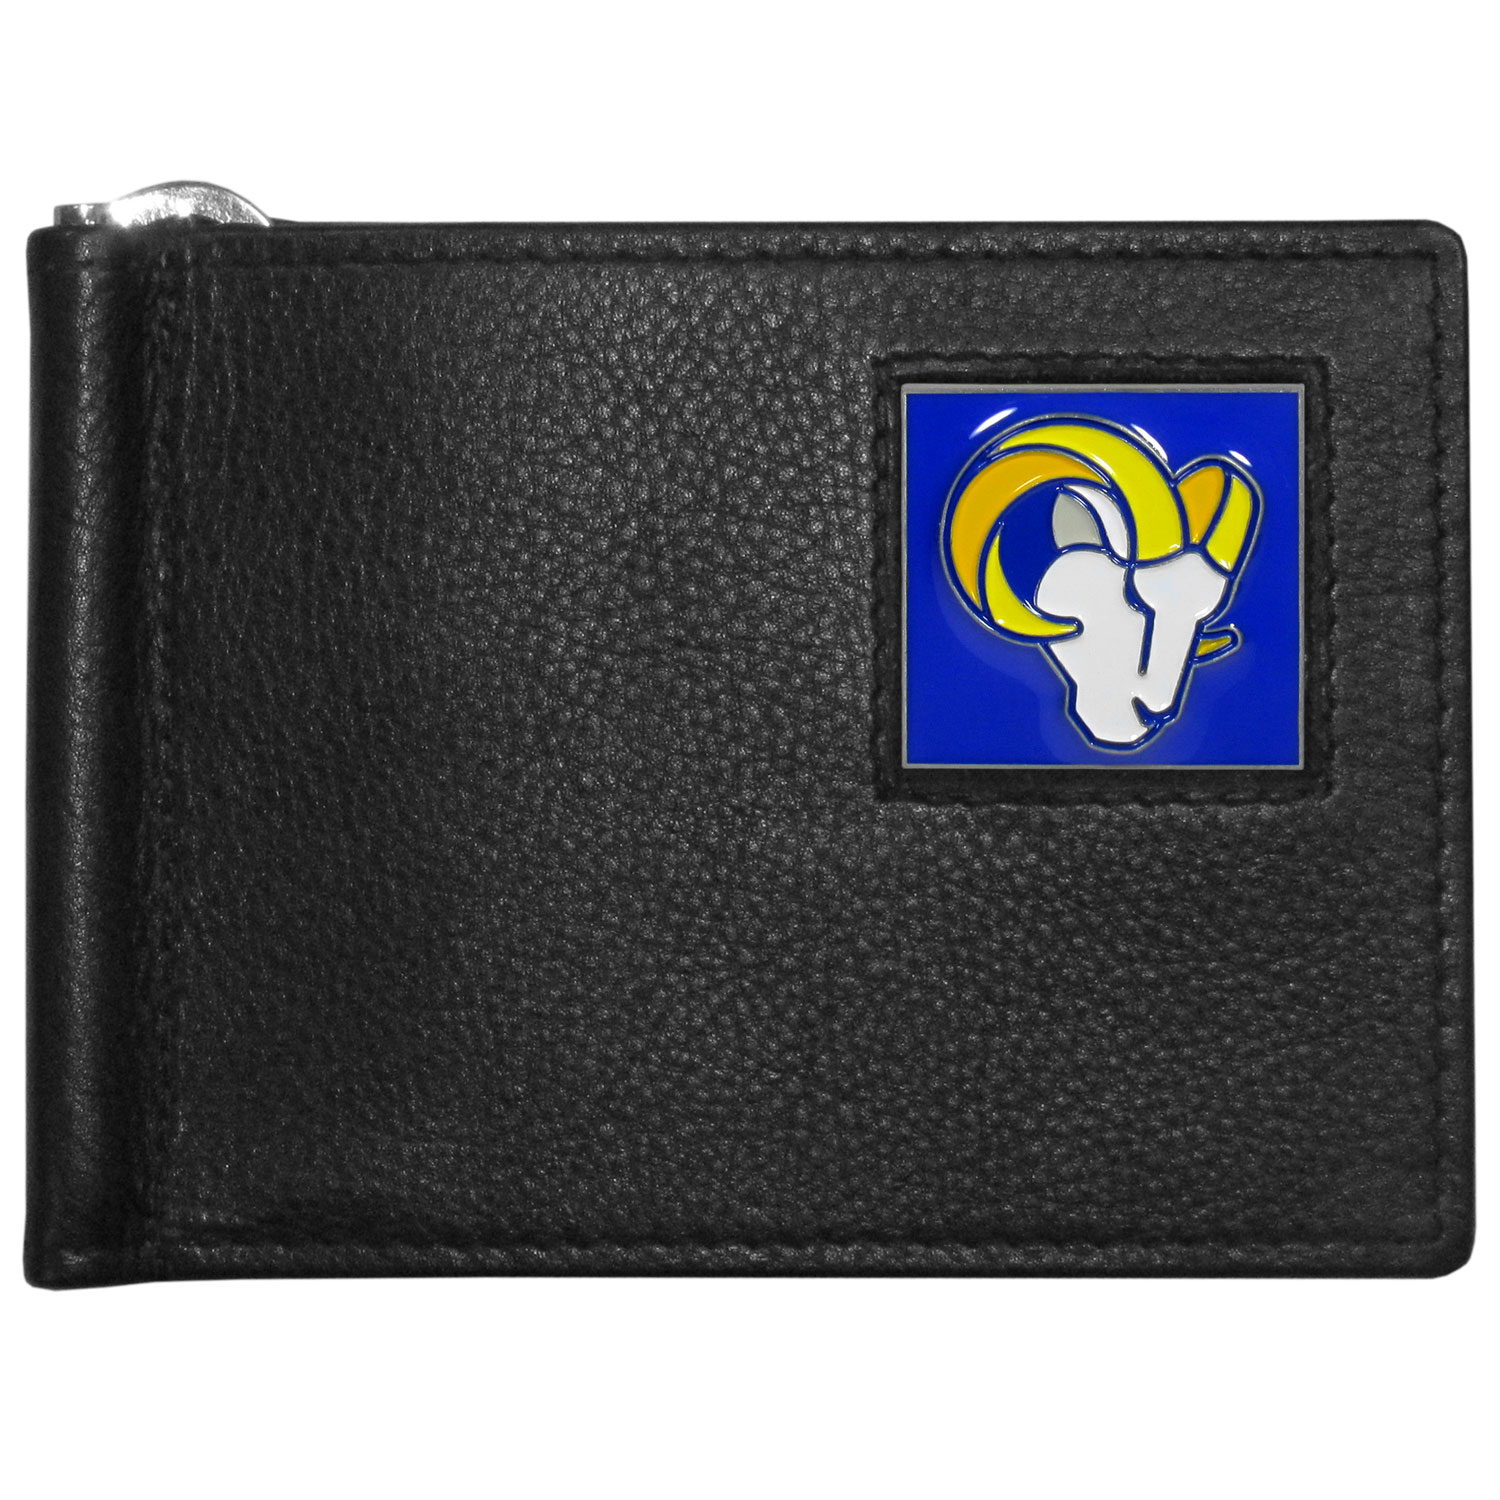 St. Louis Rams Leather Bill Clip Wallet - This cool new style wallet features an inner, metal bill clip that lips up for easy access. The super slim wallet holds tons of stuff with ample pockets, credit card slots & windowed ID slot.  The wallet is made of genuine fine grain leather and it finished with a metal St. Louis Rams emblem. The wallet is shipped in gift box packaging.